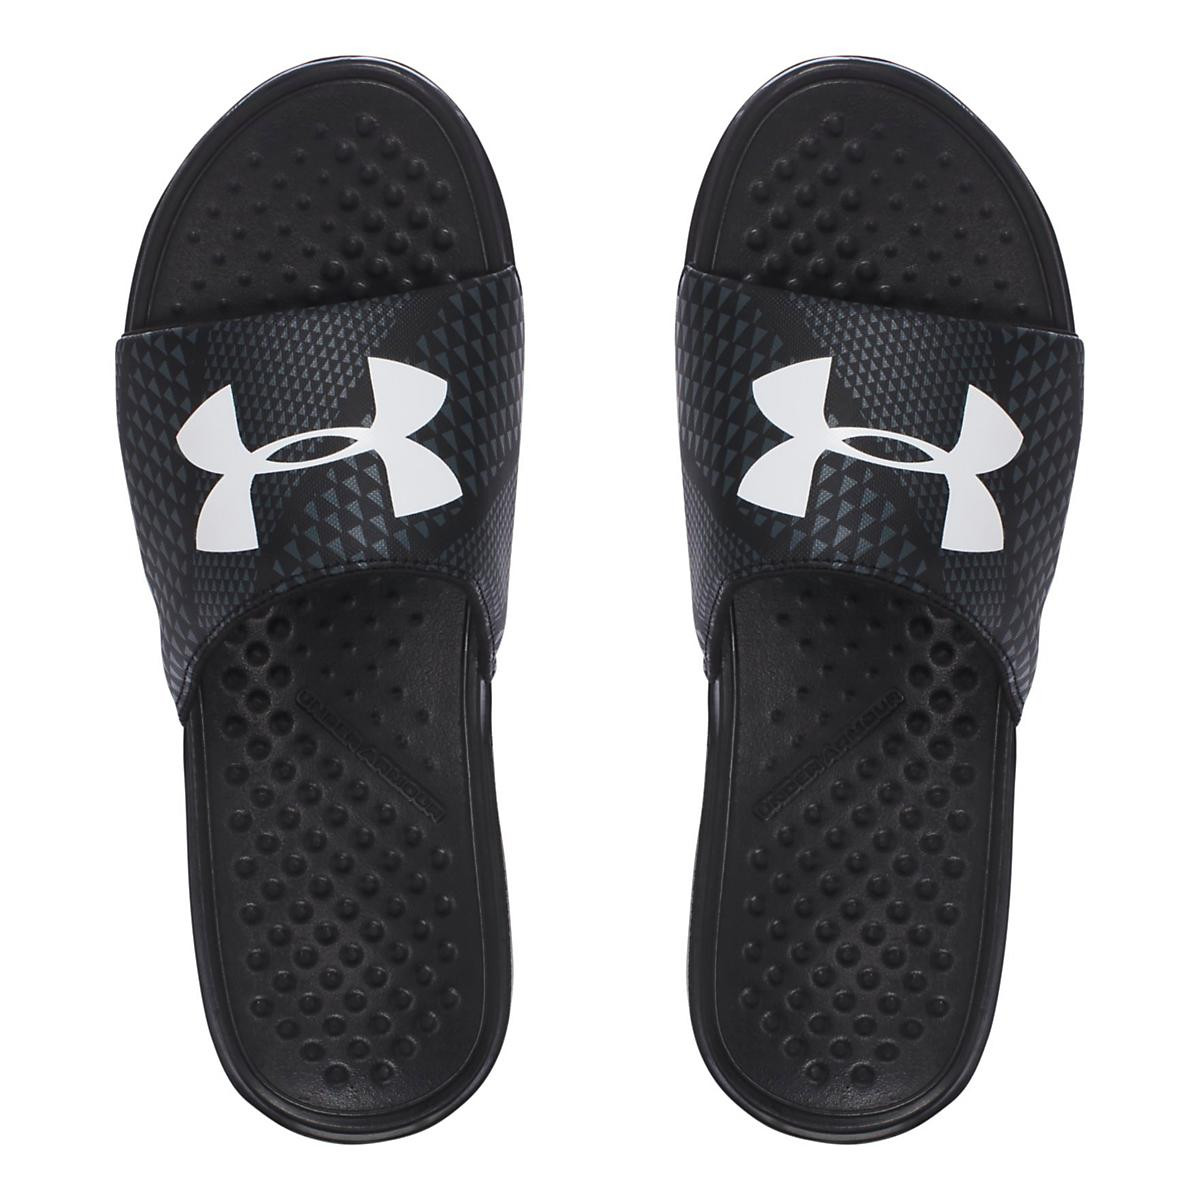 8c003bef6c68e0 Mens Under Armour Strike Micro Geo SL Sandals Shoe at Road Runner Sports